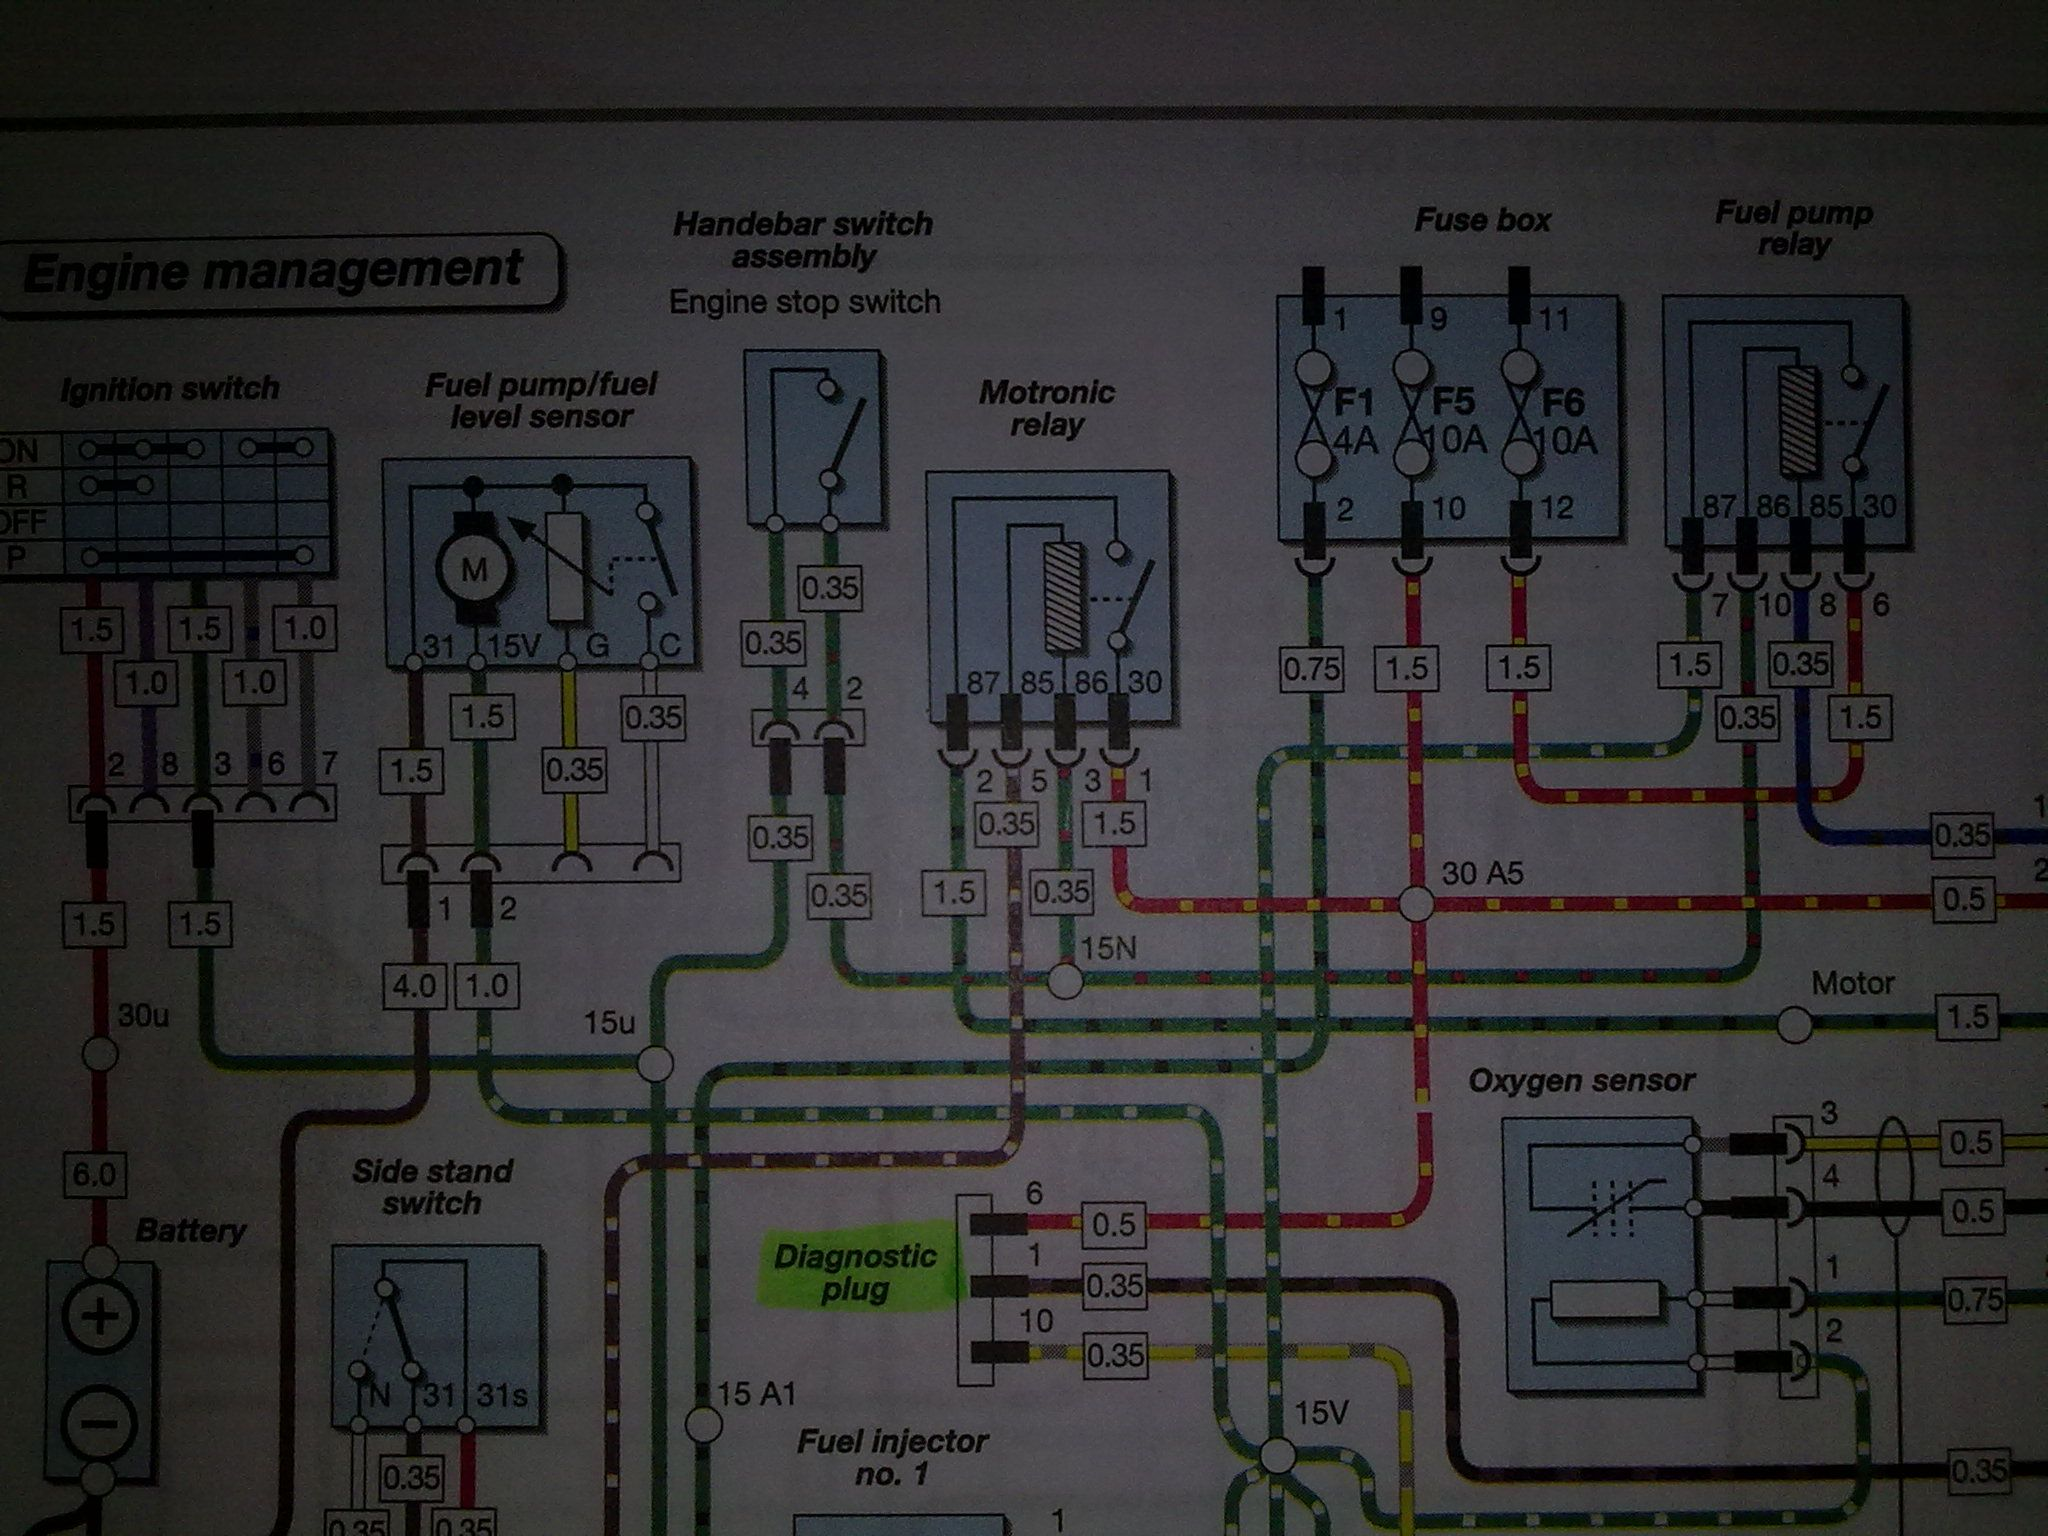 1150 Gs Wont Start Possible Fuel Pump Archive Ukgser R Electrical Circuit Diagrams